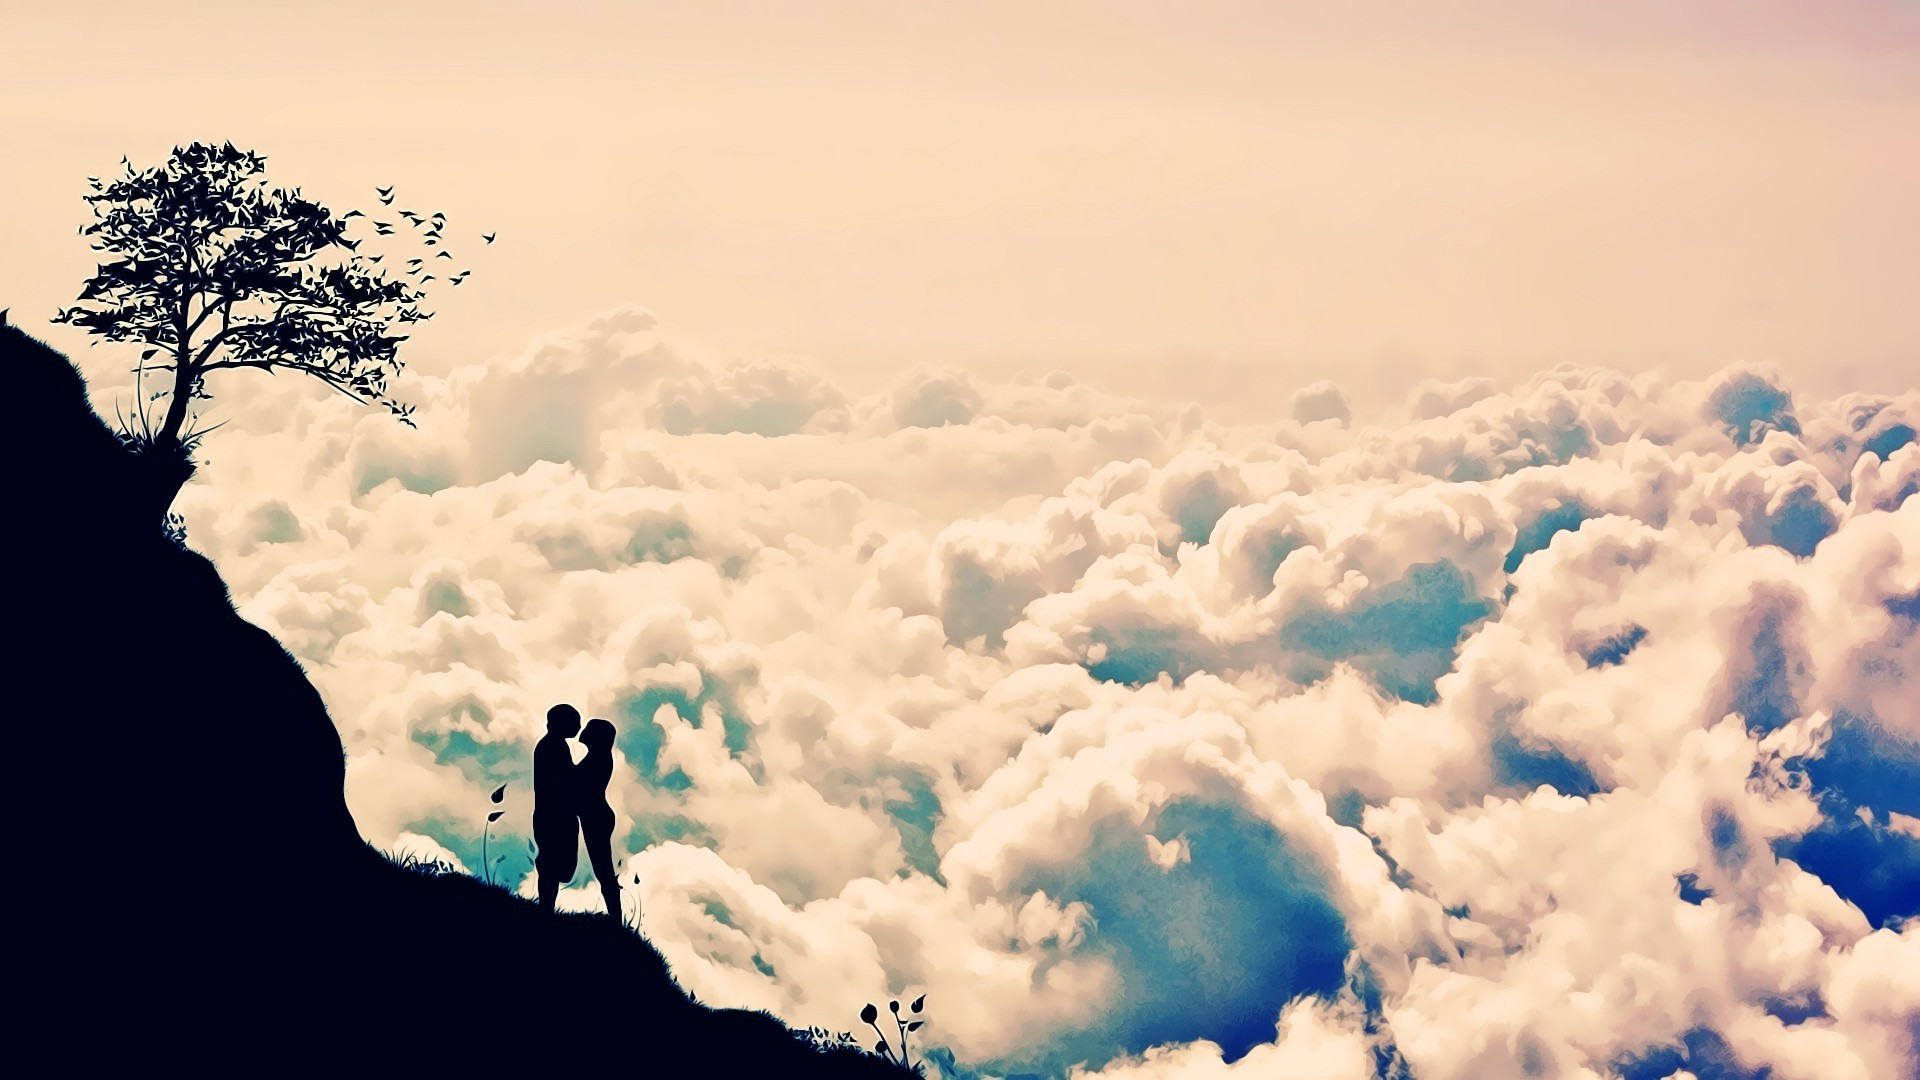 Res: 1920x1080, love, Silhouette, Clouds, Cliff Wallpapers HD / Desktop and Mobile  Backgrounds